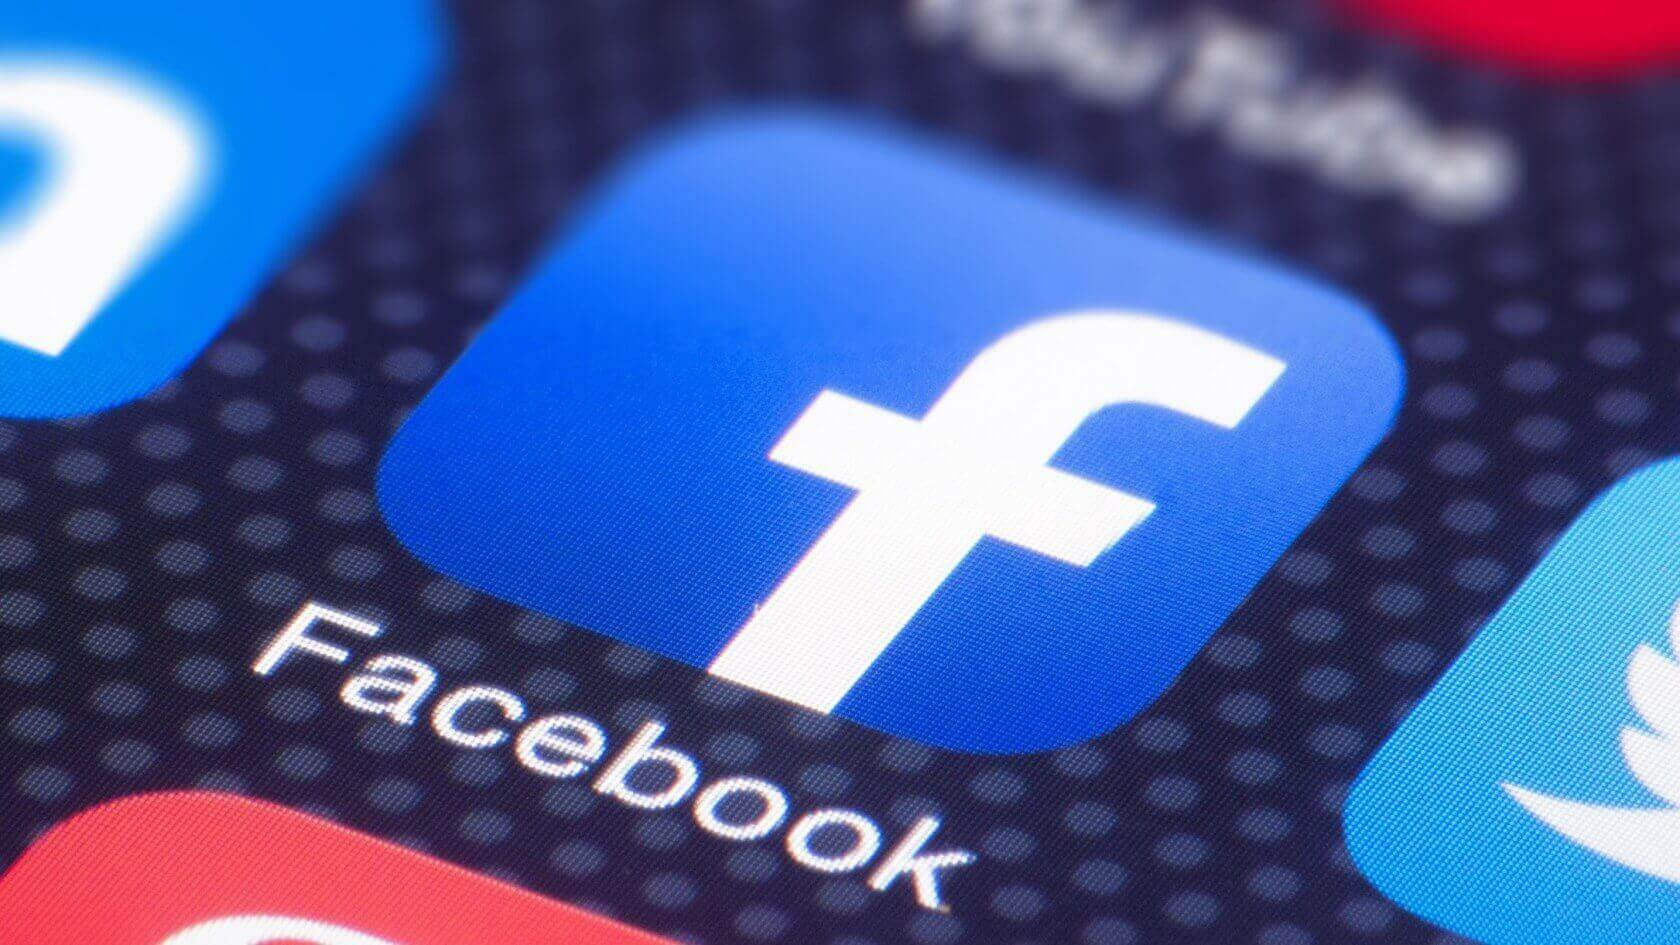 Facebook hard disks containing company's payroll information stolen